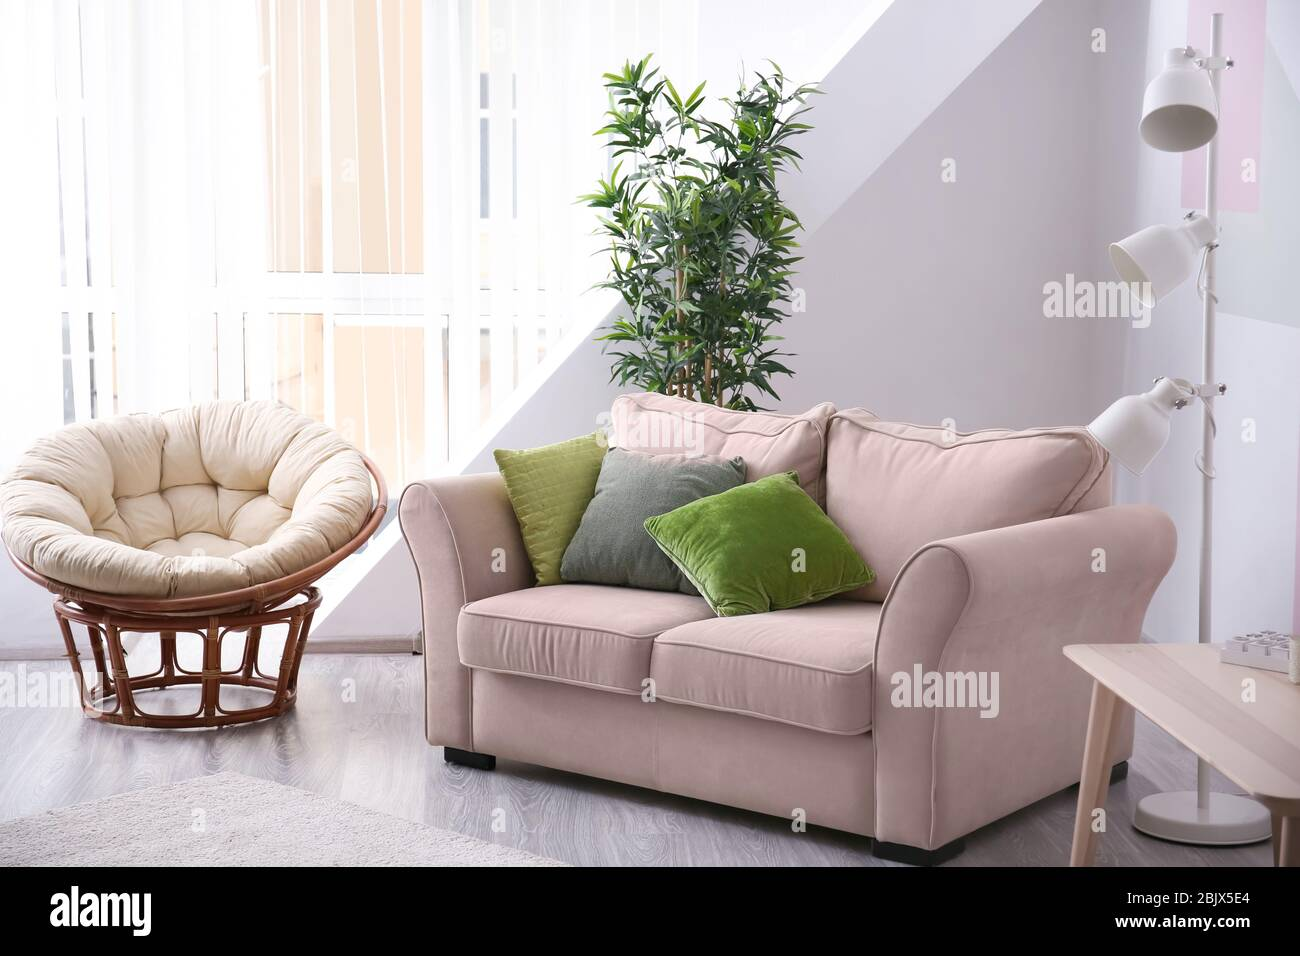 stylish living room interior with fortable sofa and lounge chair 2BJX5E4